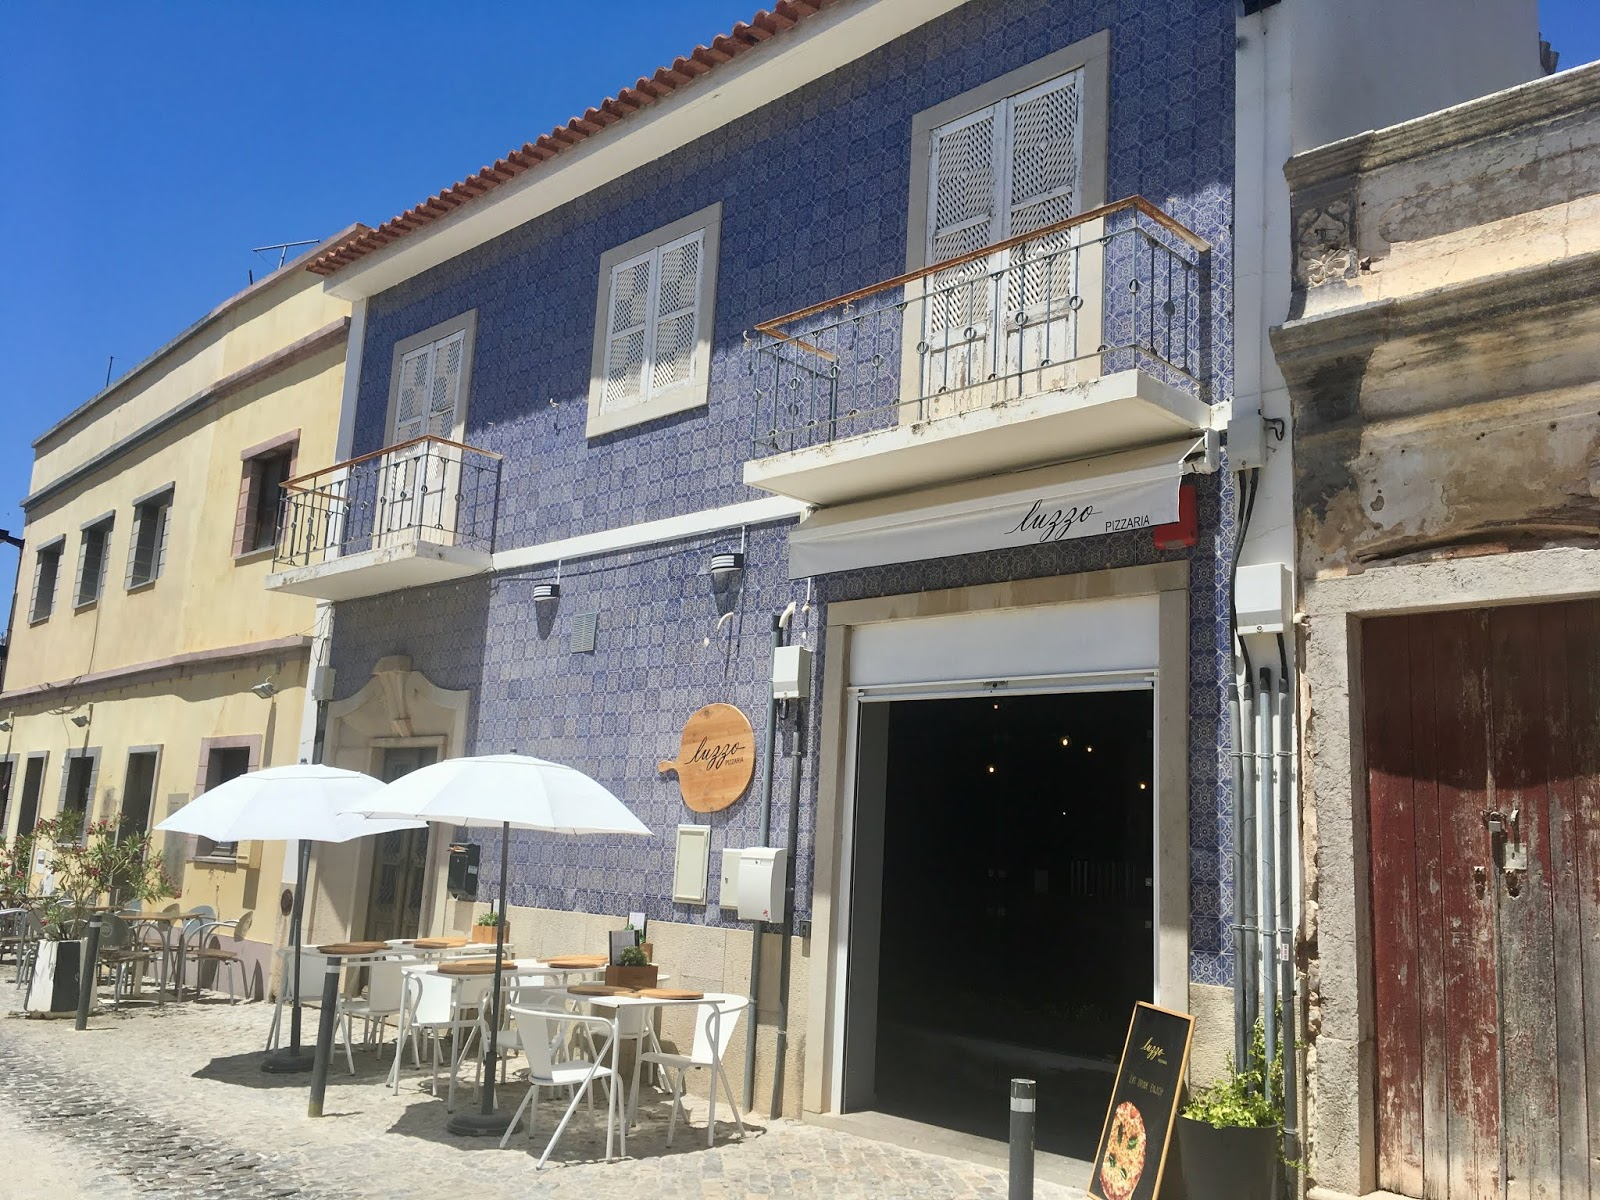 Pizza restaurants in Tavira, Portugal